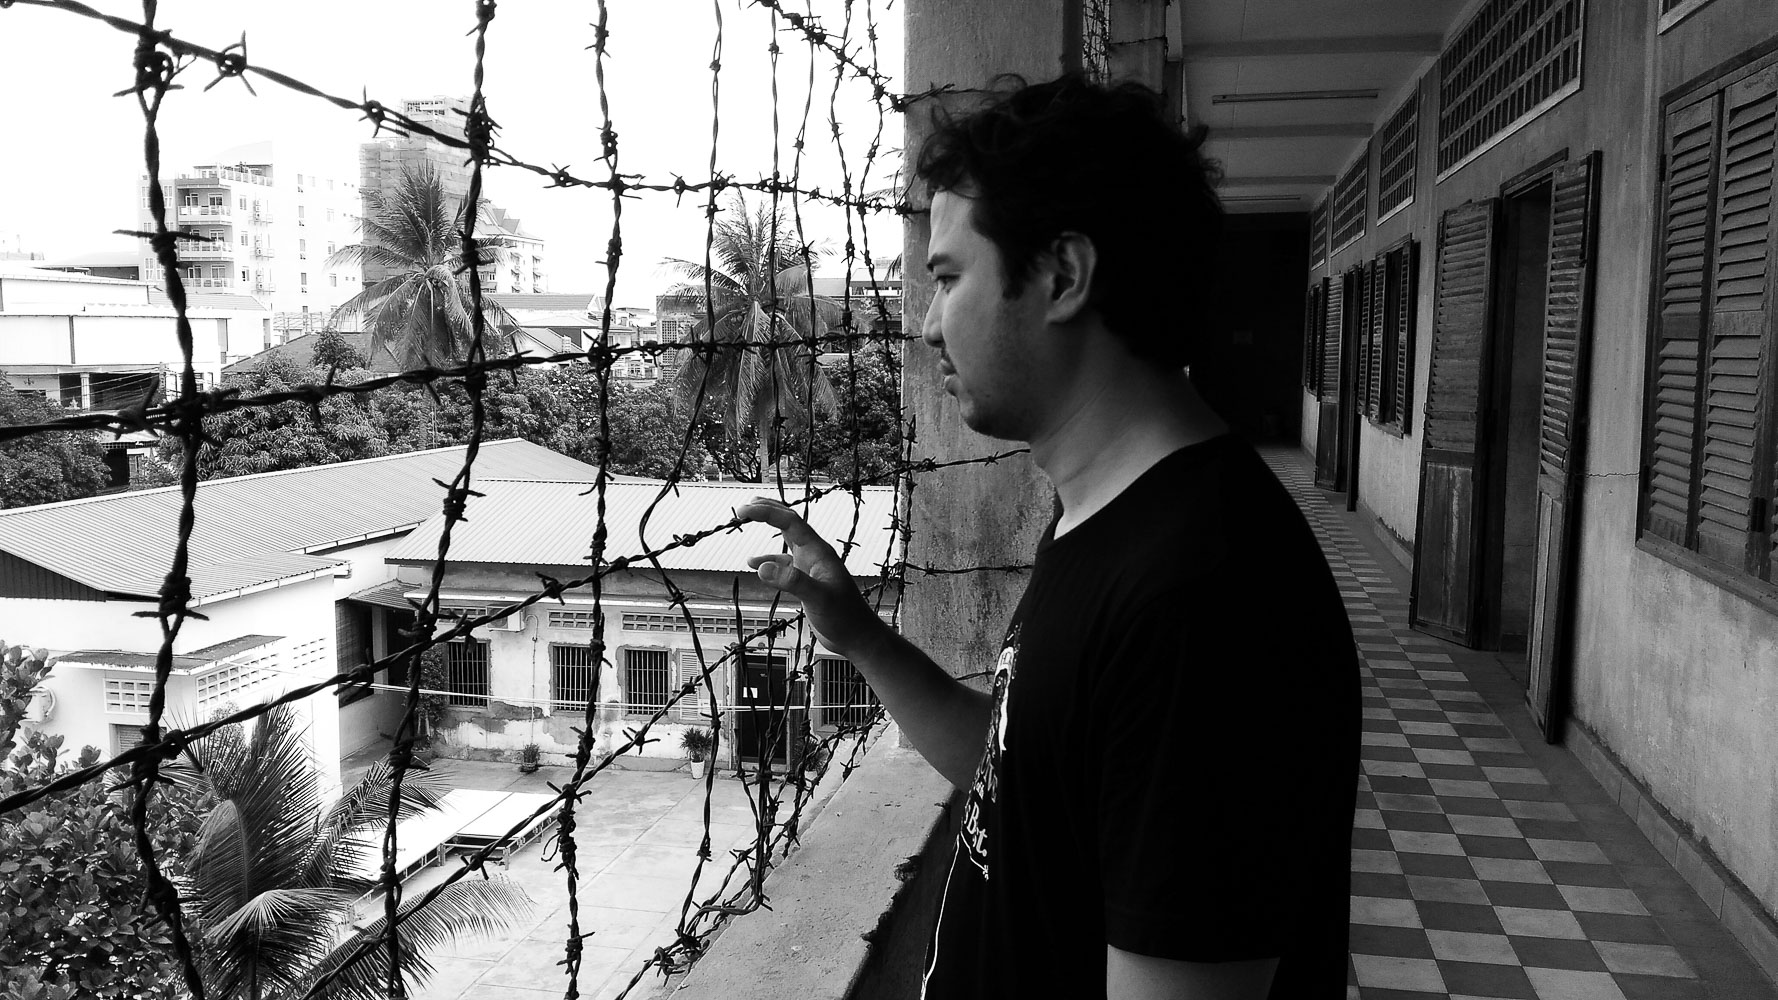 I wonder what the prisoners of Tuol Sleng saw beyond these wires. Is it hope for freedom or their last peek at beautiful sunshine?